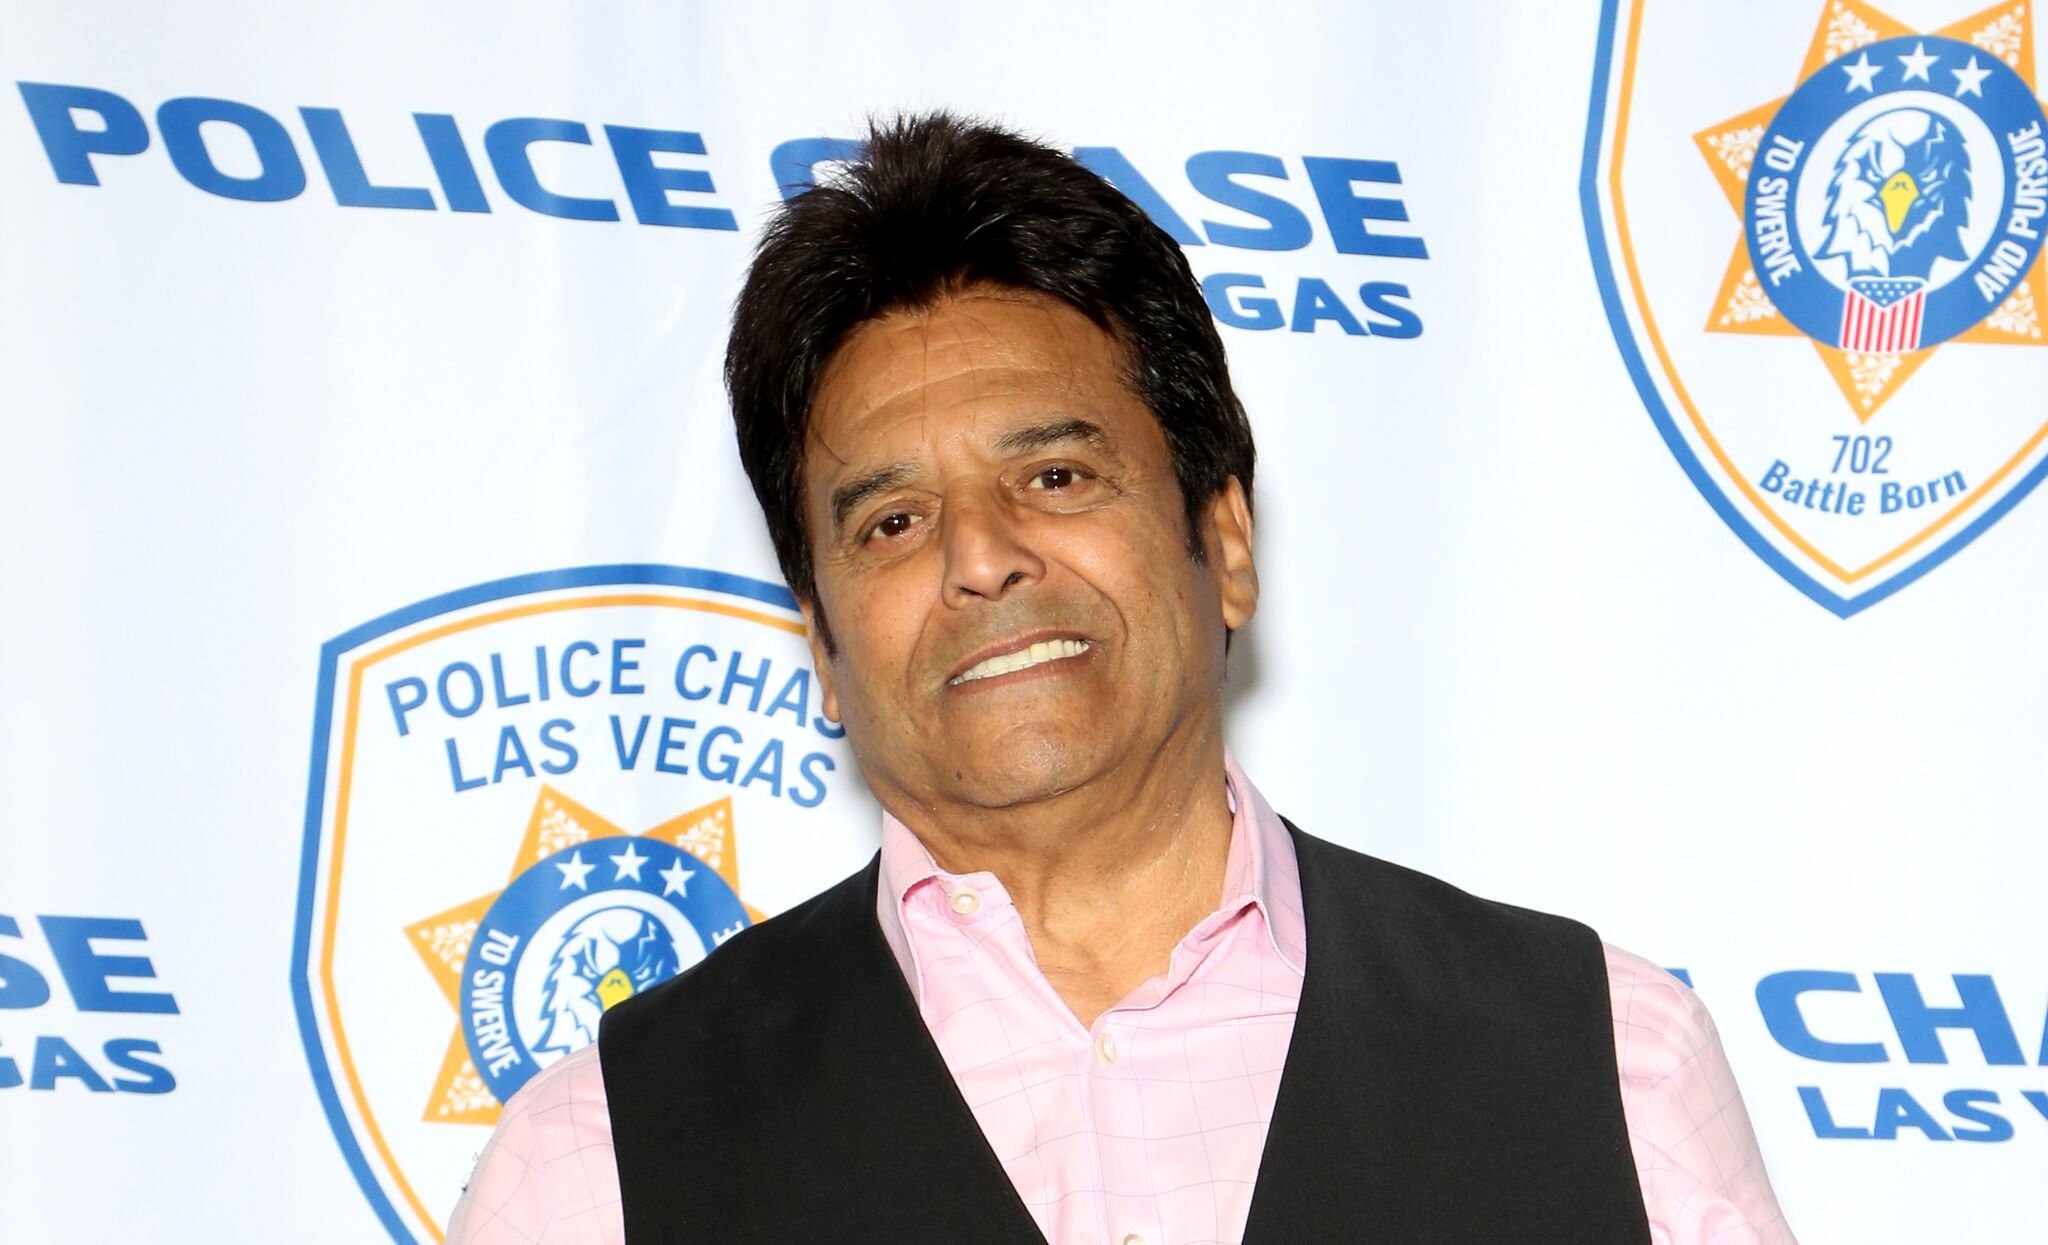 Actor Erik Estrada attends the grand opening of Police Chase Las Vegas on January 19, 2019 in Las Vegas, Nevada. | Getty Images